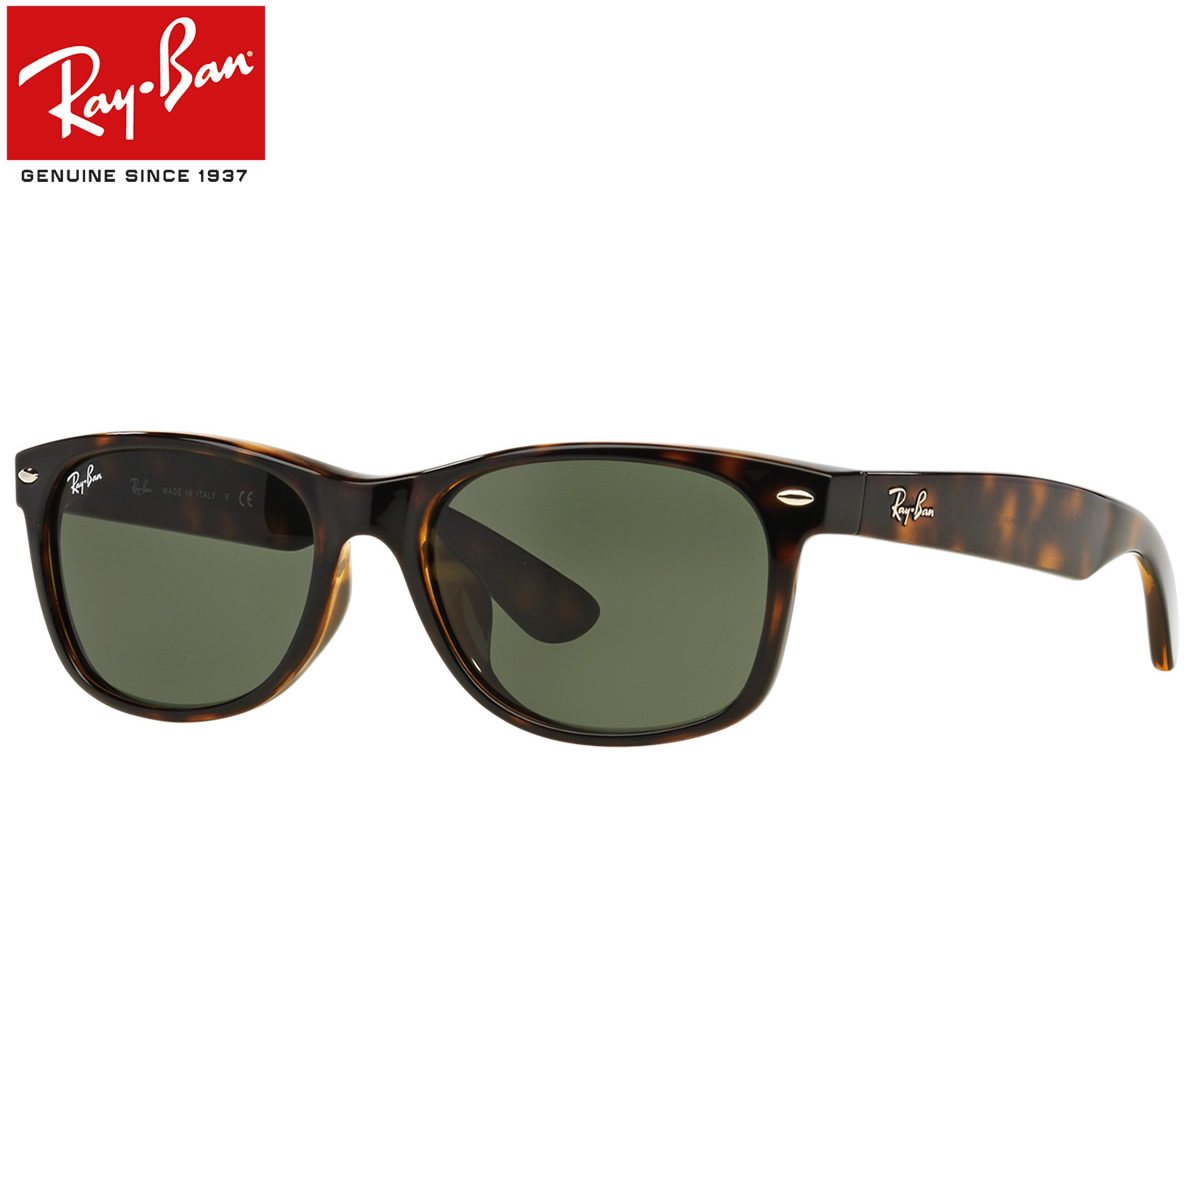 788625a9f055a Way Farrar that is a pronoun of Ray-Ban becomes stylish in contemporary  style and is an appearance. It becomes the rather thin silhouette more  somewhat than ...